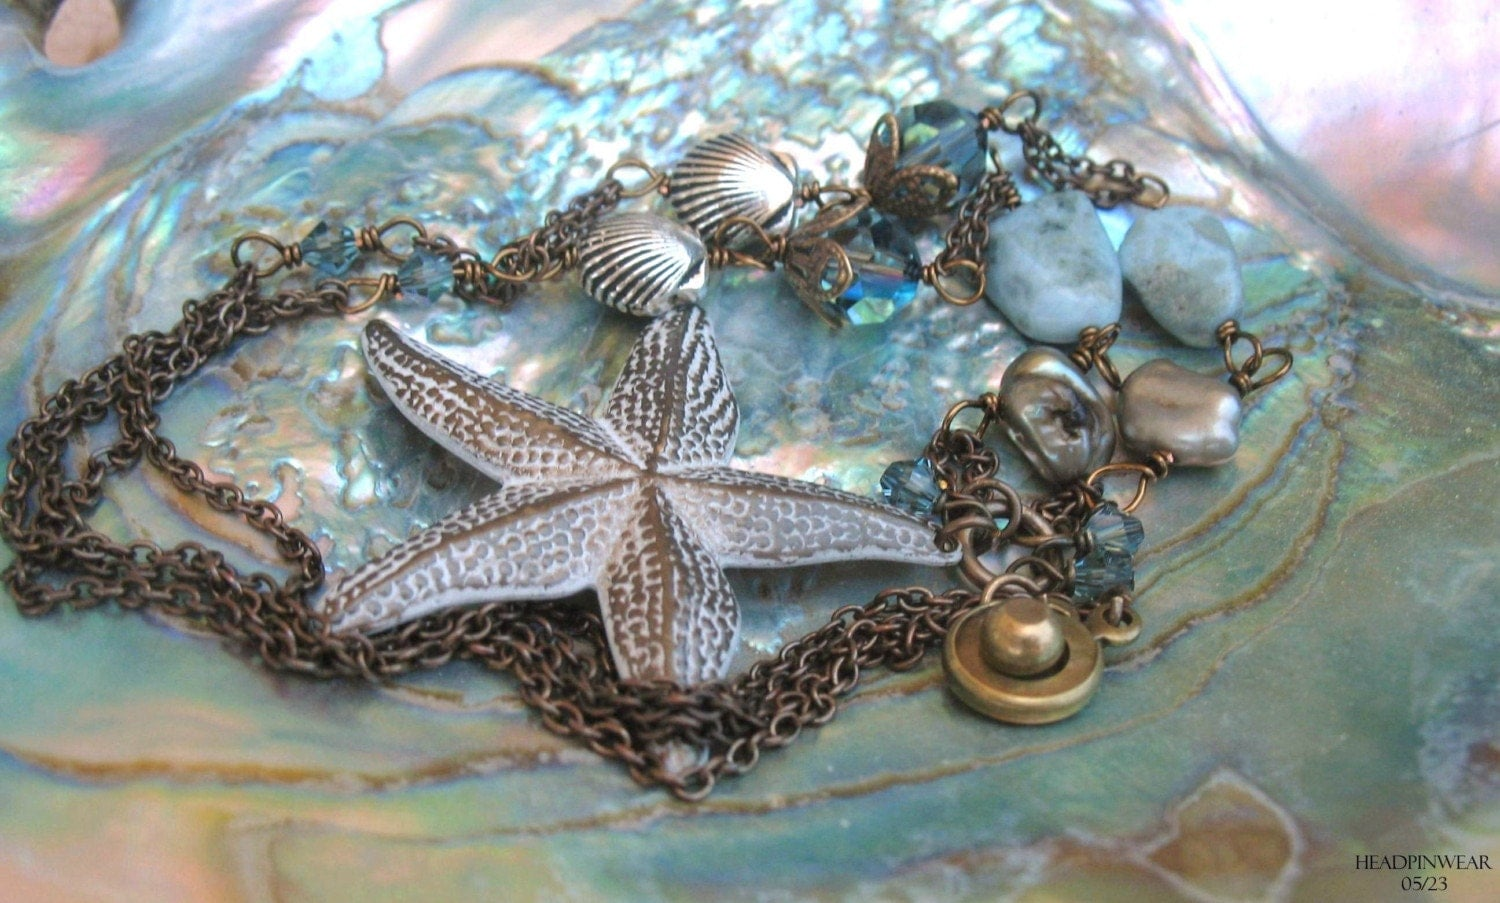 A Brass White Starfish combined with Pearls, Gemstones, Sterling Silver, and Brass